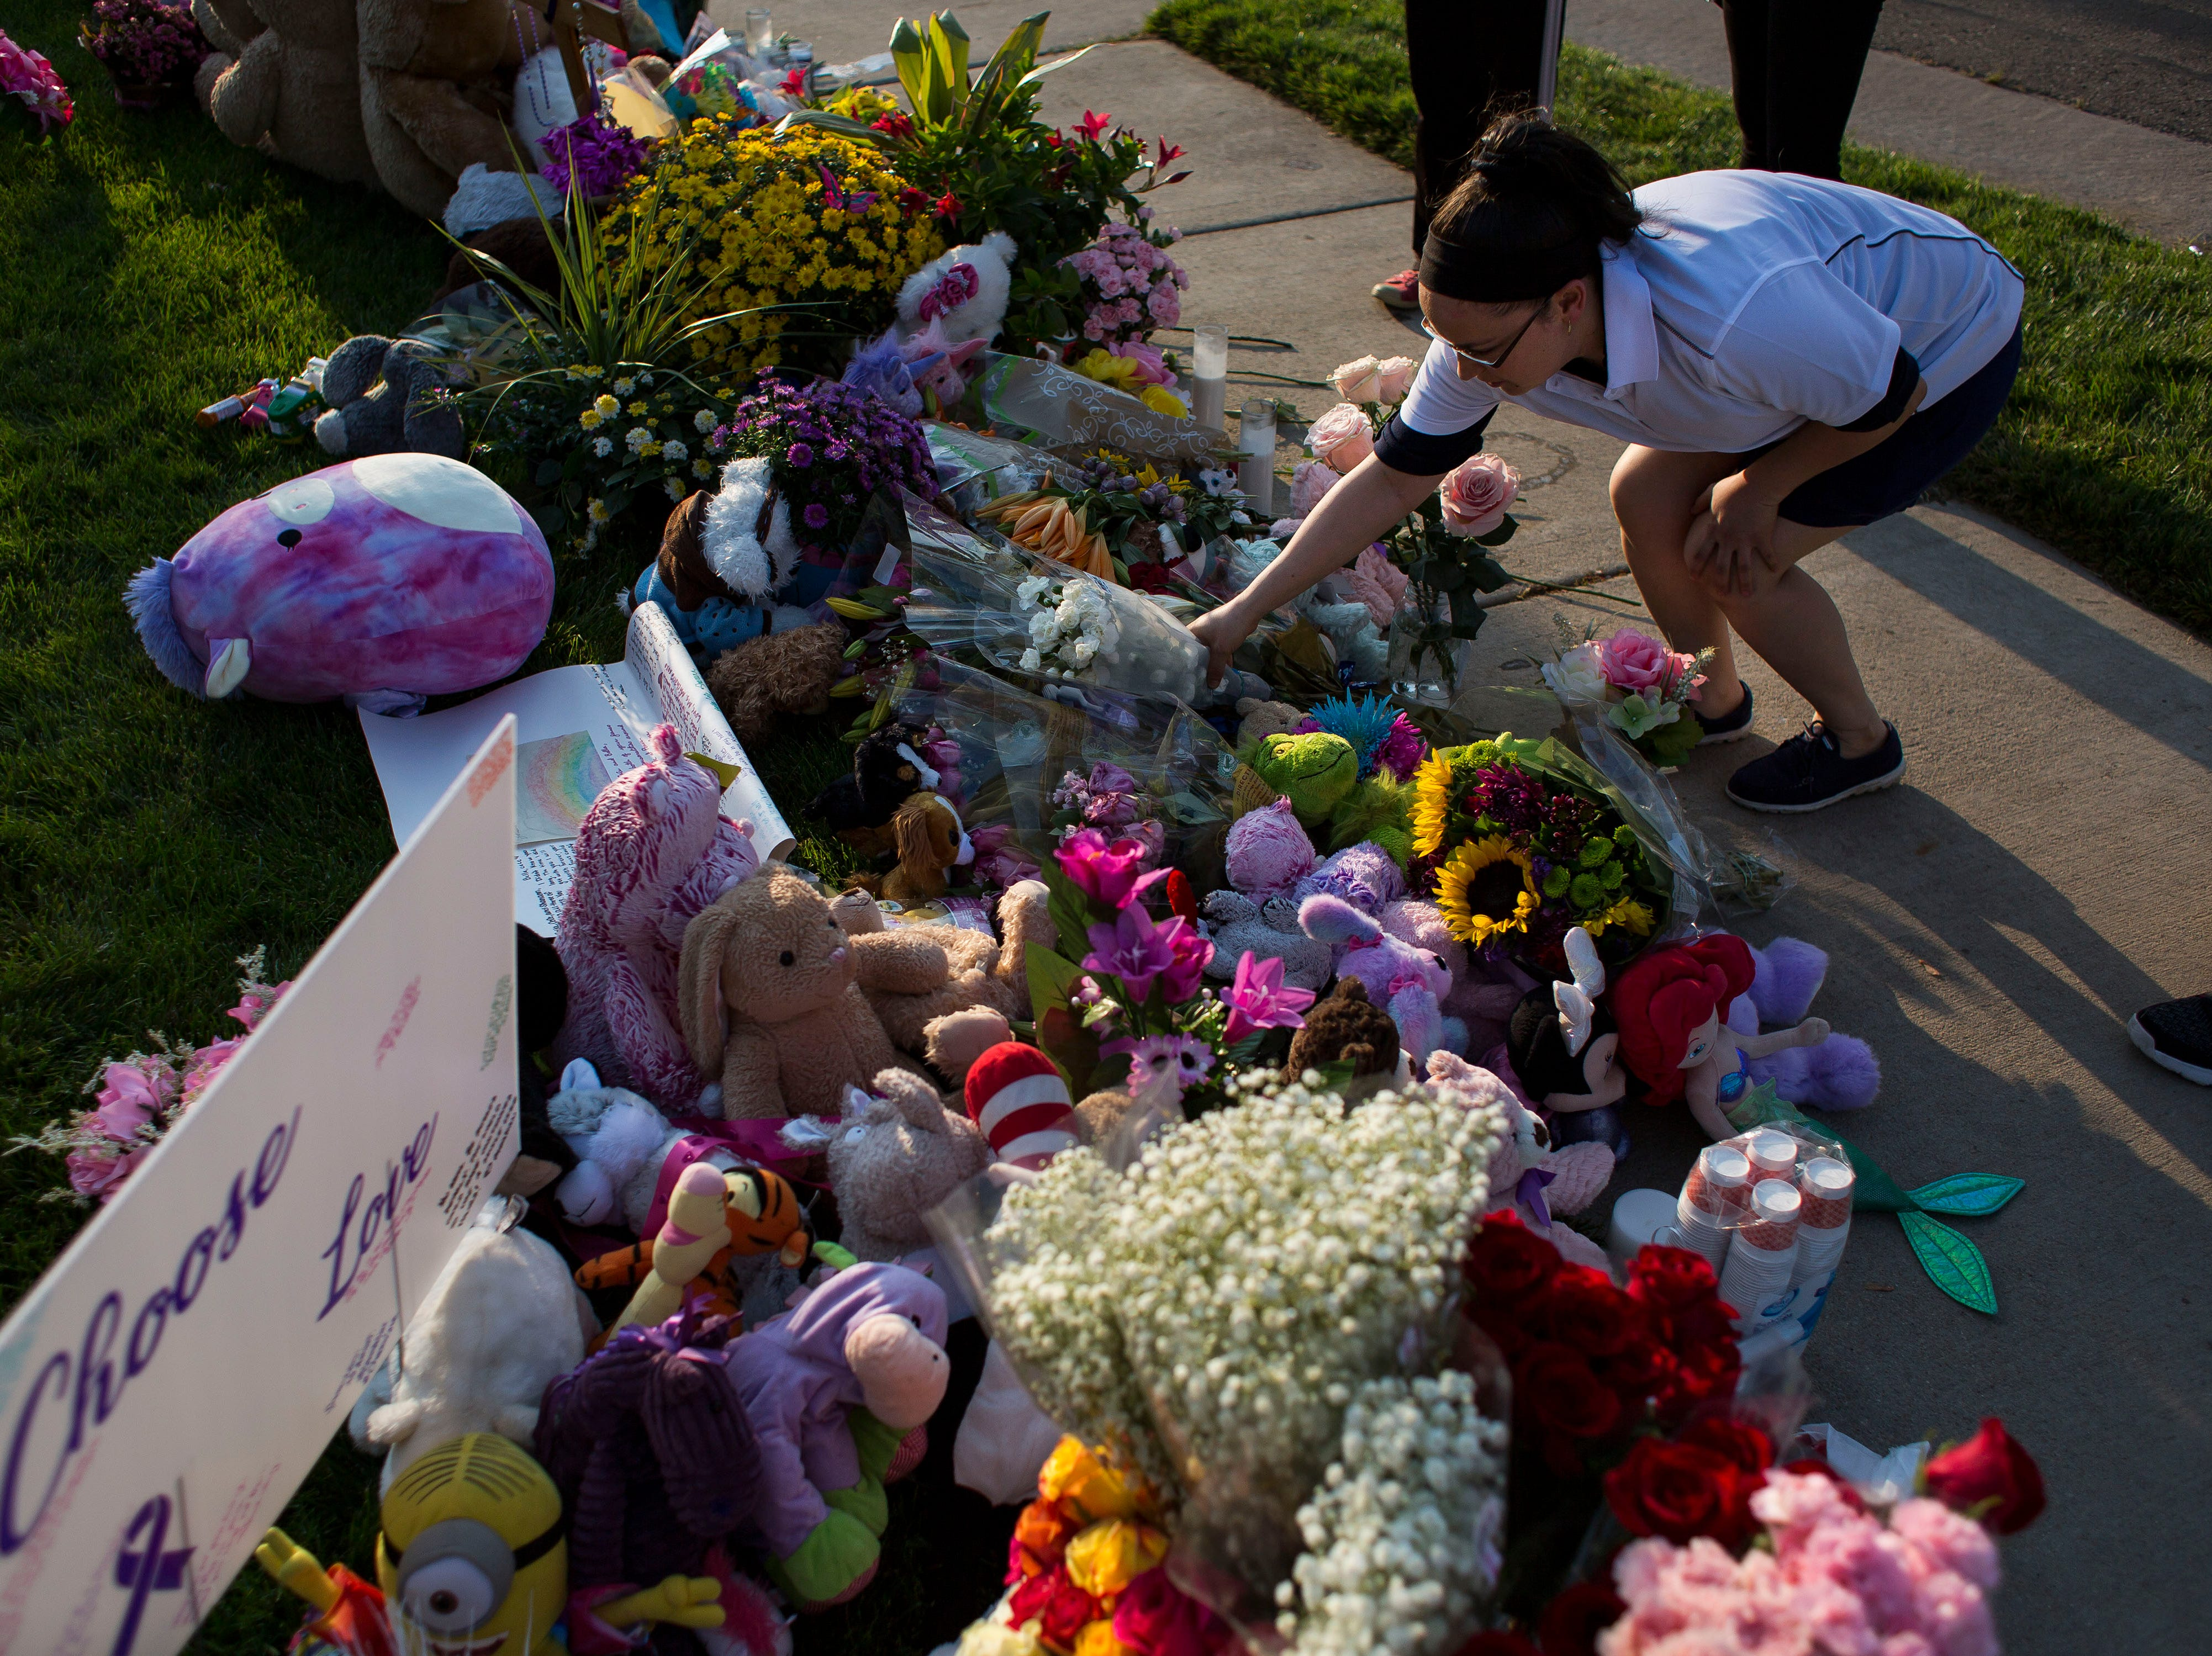 Yuliana Carmona places flowers at a memorial for a candle-lit vigil for the slain Shanann Watts and her two daughters, Bella, 4, and Celeste, 3, in front of the Watts' family home on Friday, Aug. 17, 2018, in Frederick, Colo.